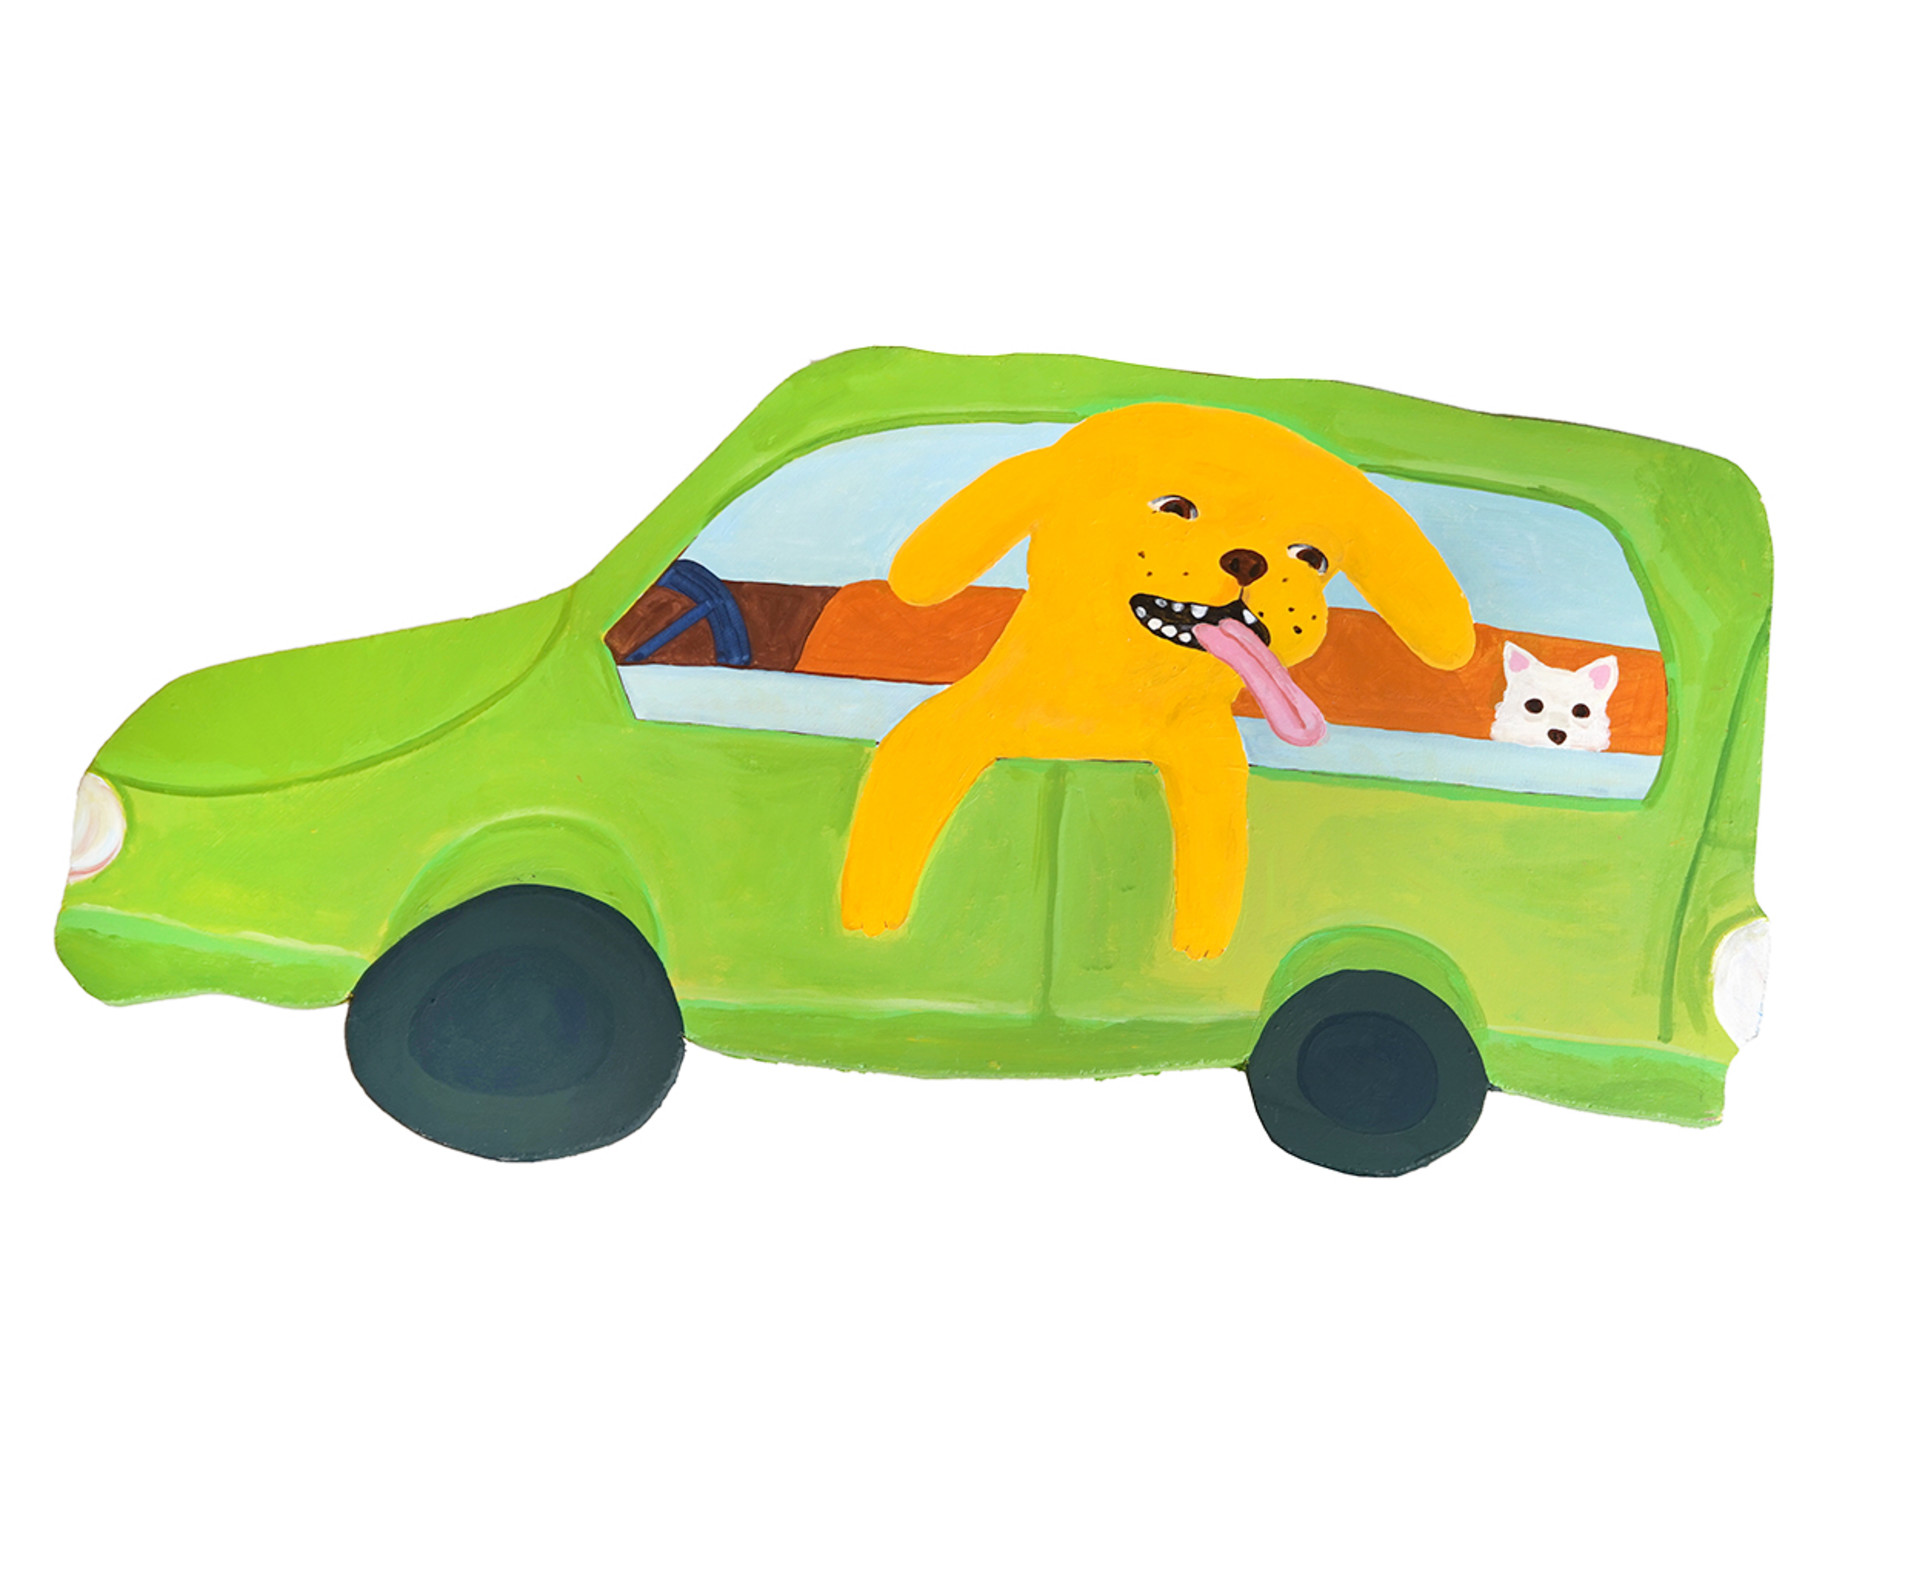 Katie Kimmel, Dogs in a Nissan Cube, 2019